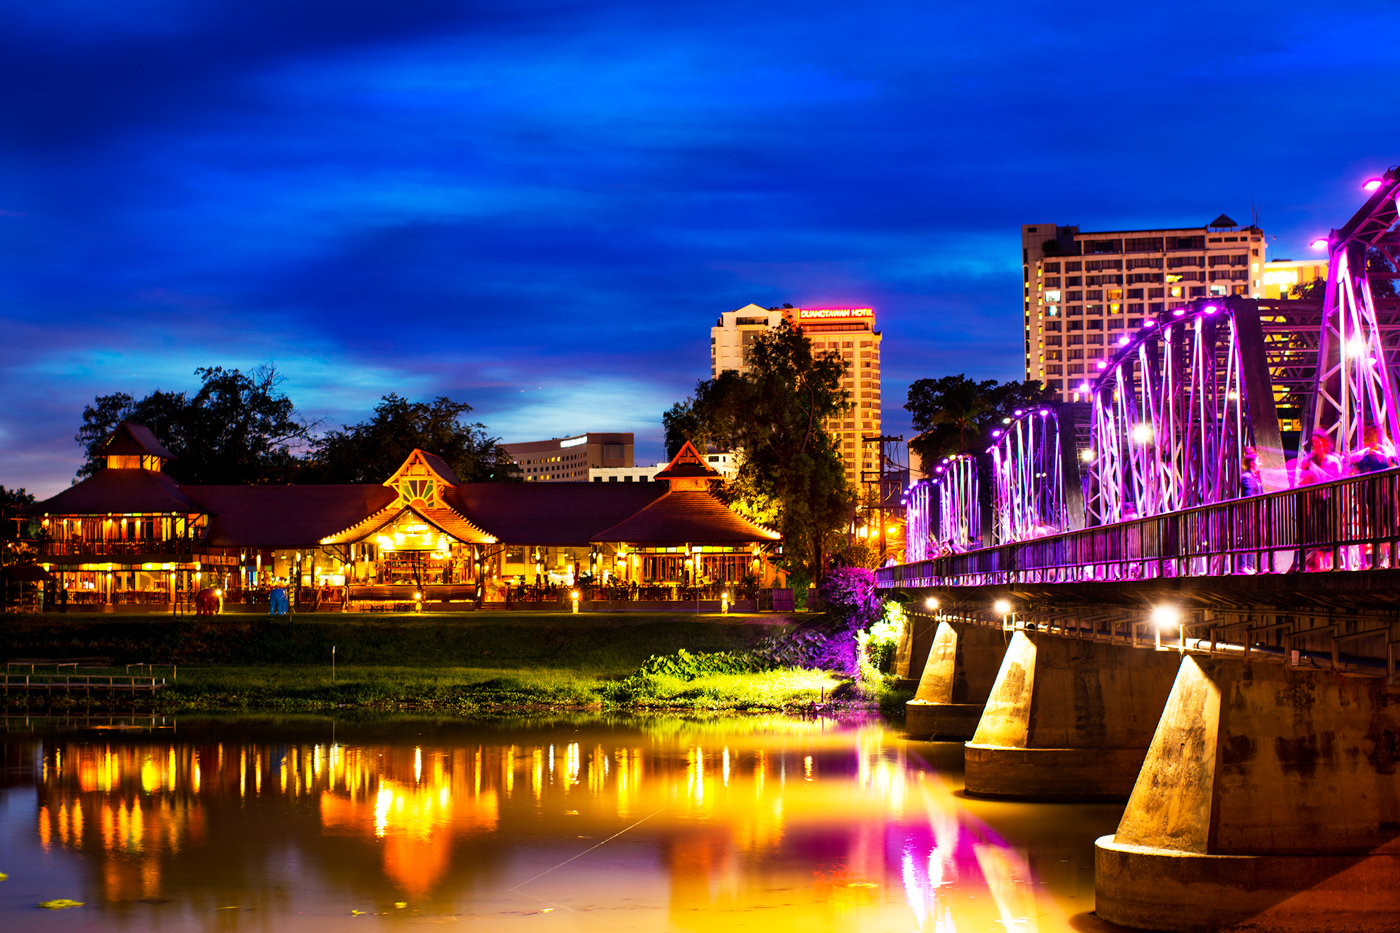 Night in Chiang Mai 10 Photoshoot Ideas That Aren't Boring